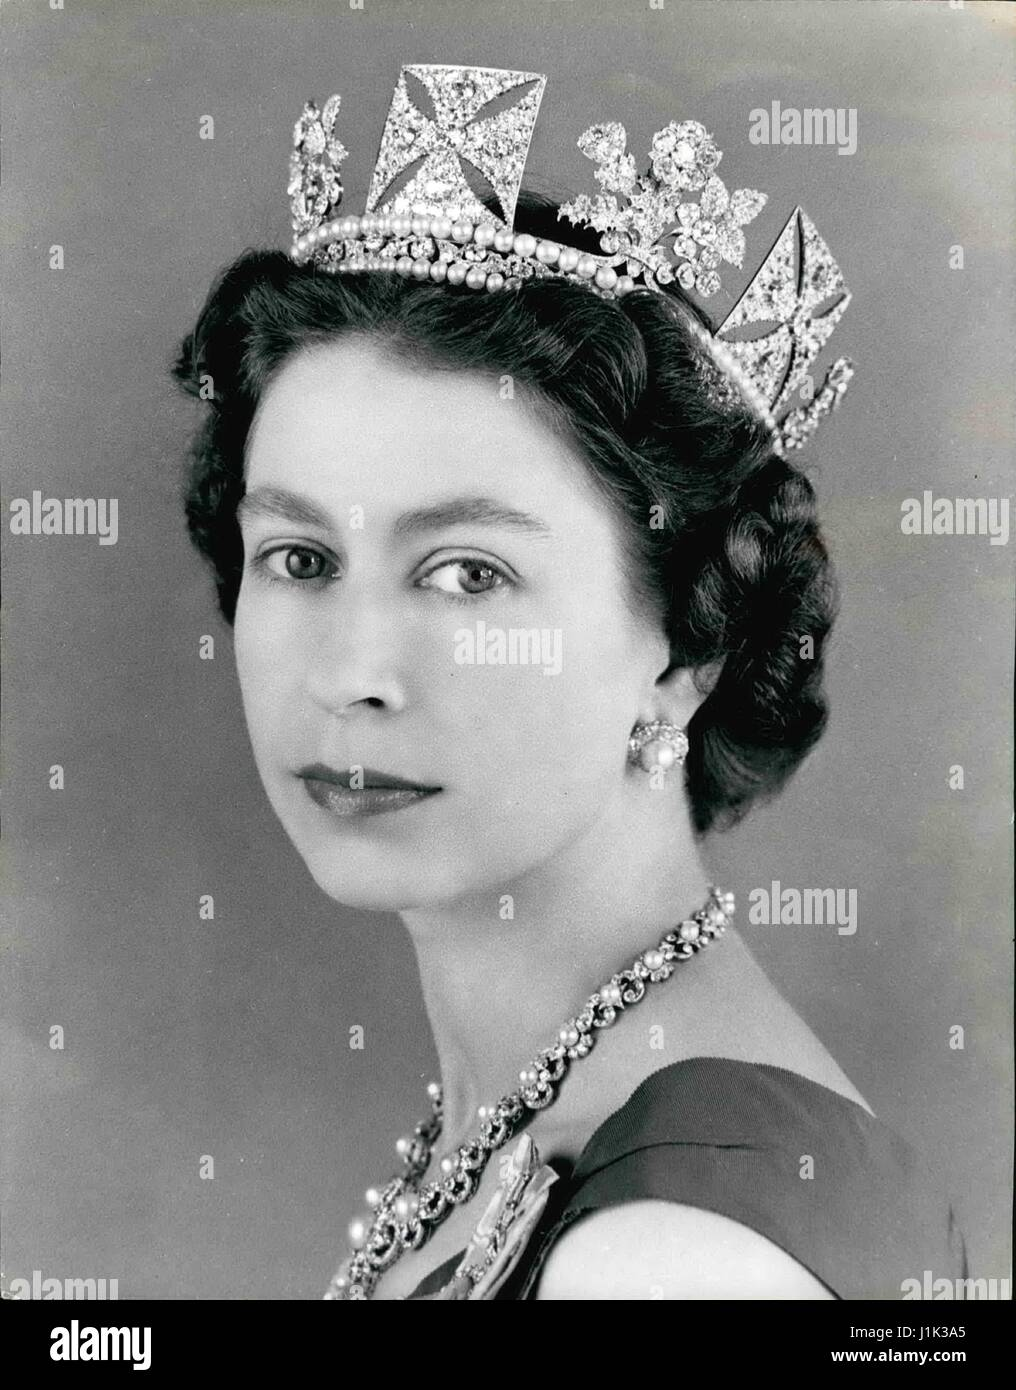 queen elizabeth ii britains oldest 32 rare pictures from the life of queen elizabeth ii, britain's longest reigning monarch during world war ii, 18-year-old princess elizabeth was known as second subaltern elizabeth windsor queen elizabeth ii and prince philip.